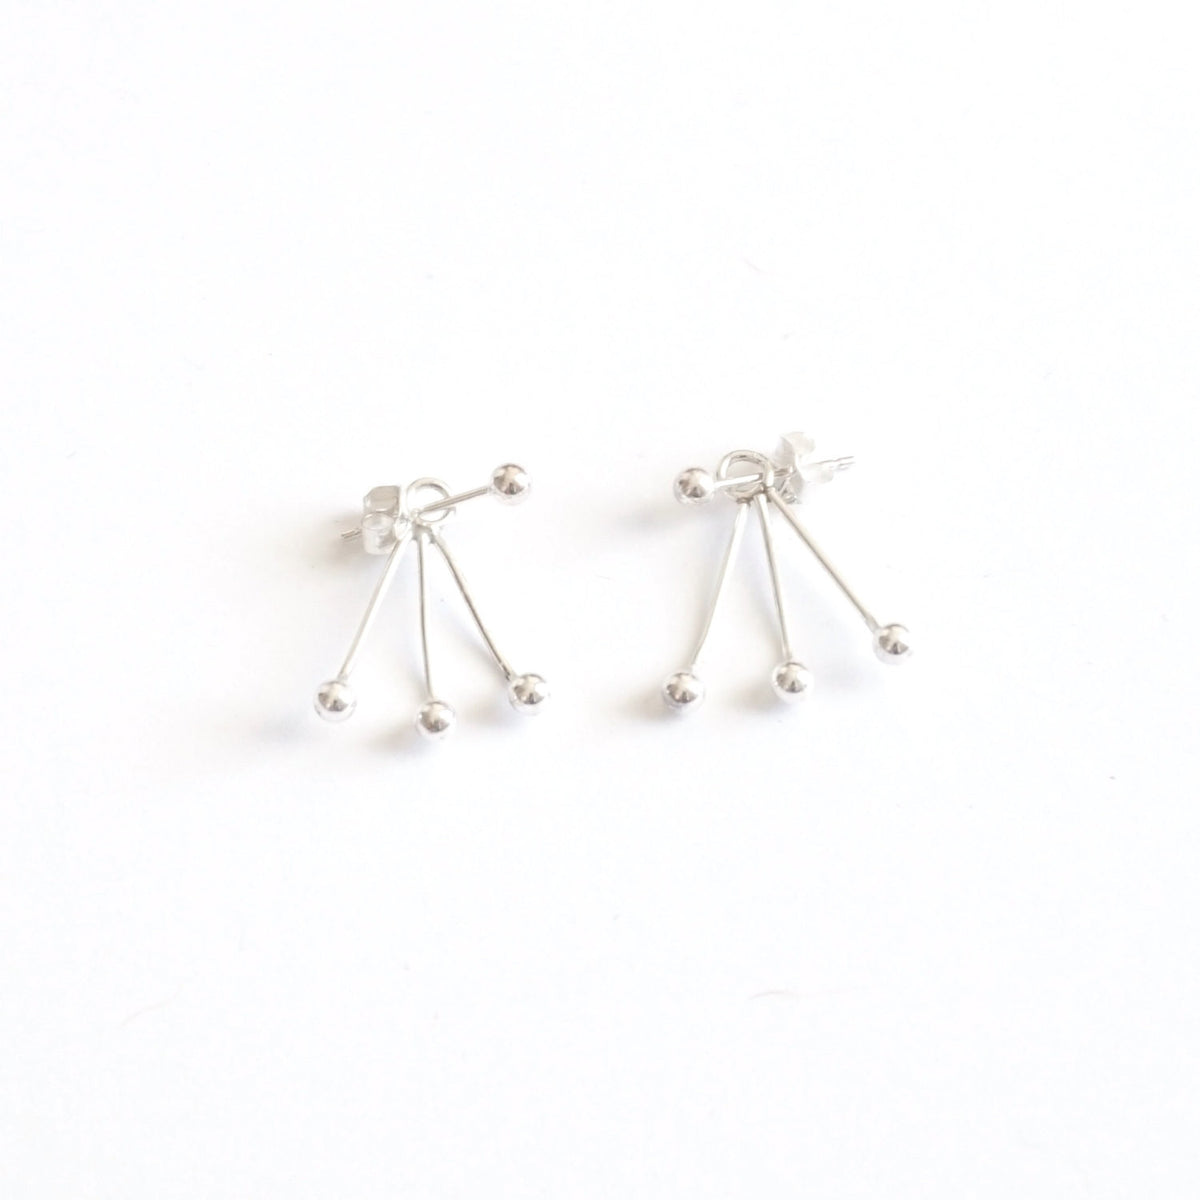 Chic and Unique - Hand-Crafted, Distinctive Triple Ball Ear Jacket Earrings - 0217 - Virginia Wynne Designs